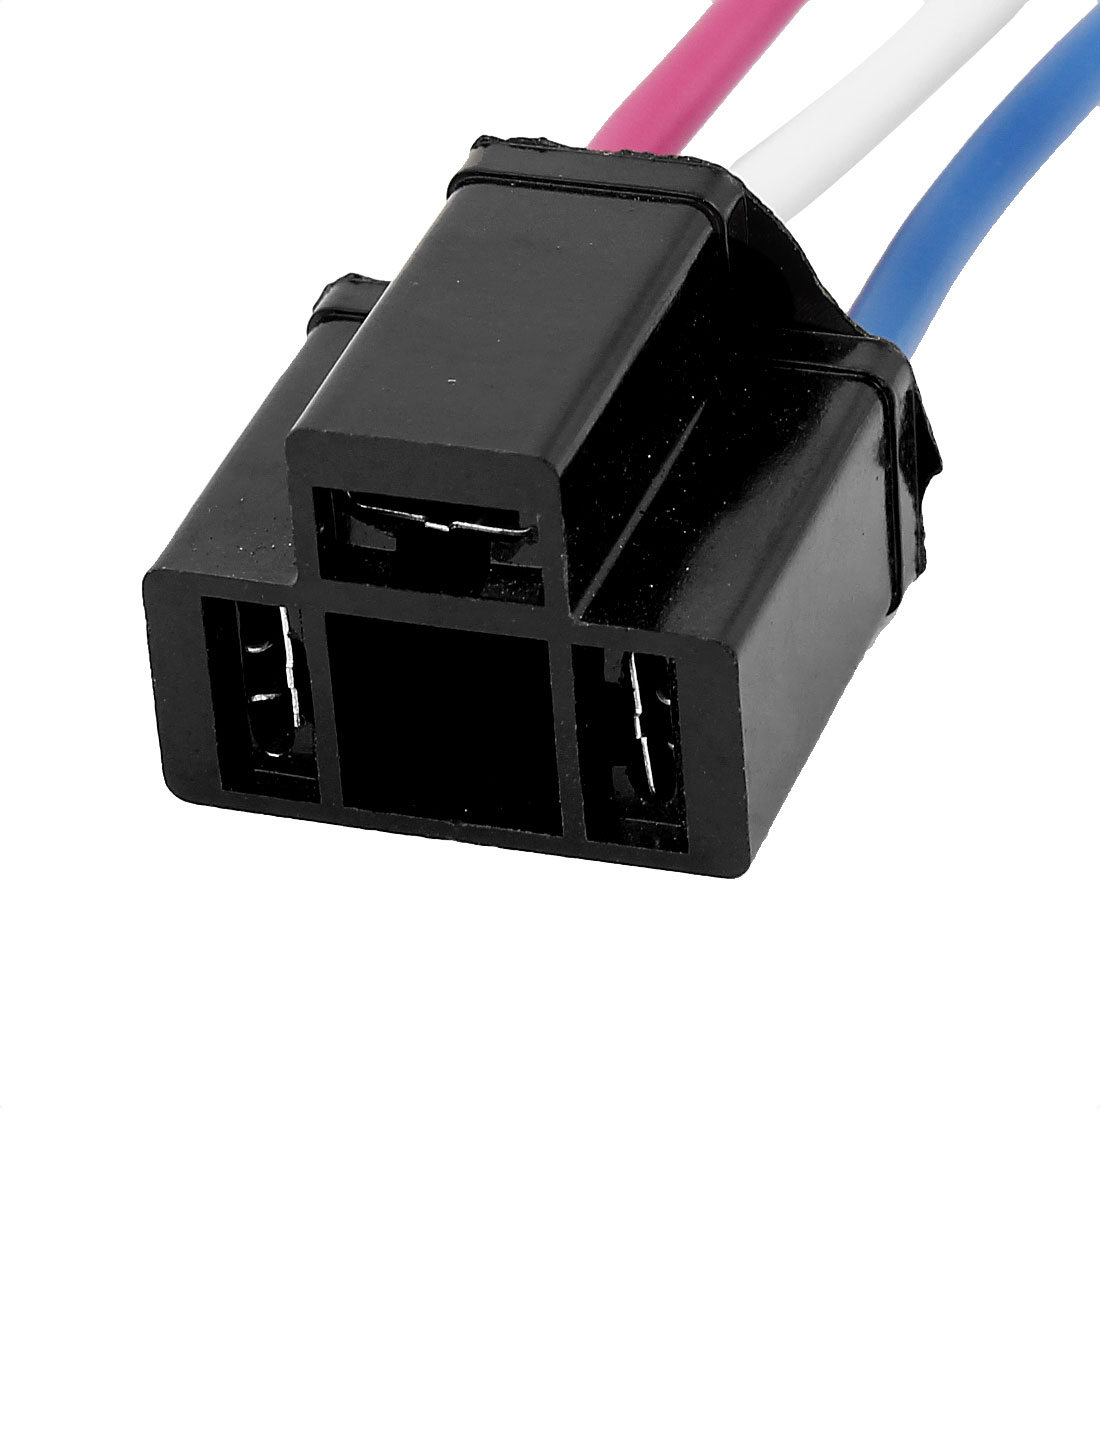 medium resolution of auto car alarm relay harness cable 3 wire end cermic h4 socket black walmart canada